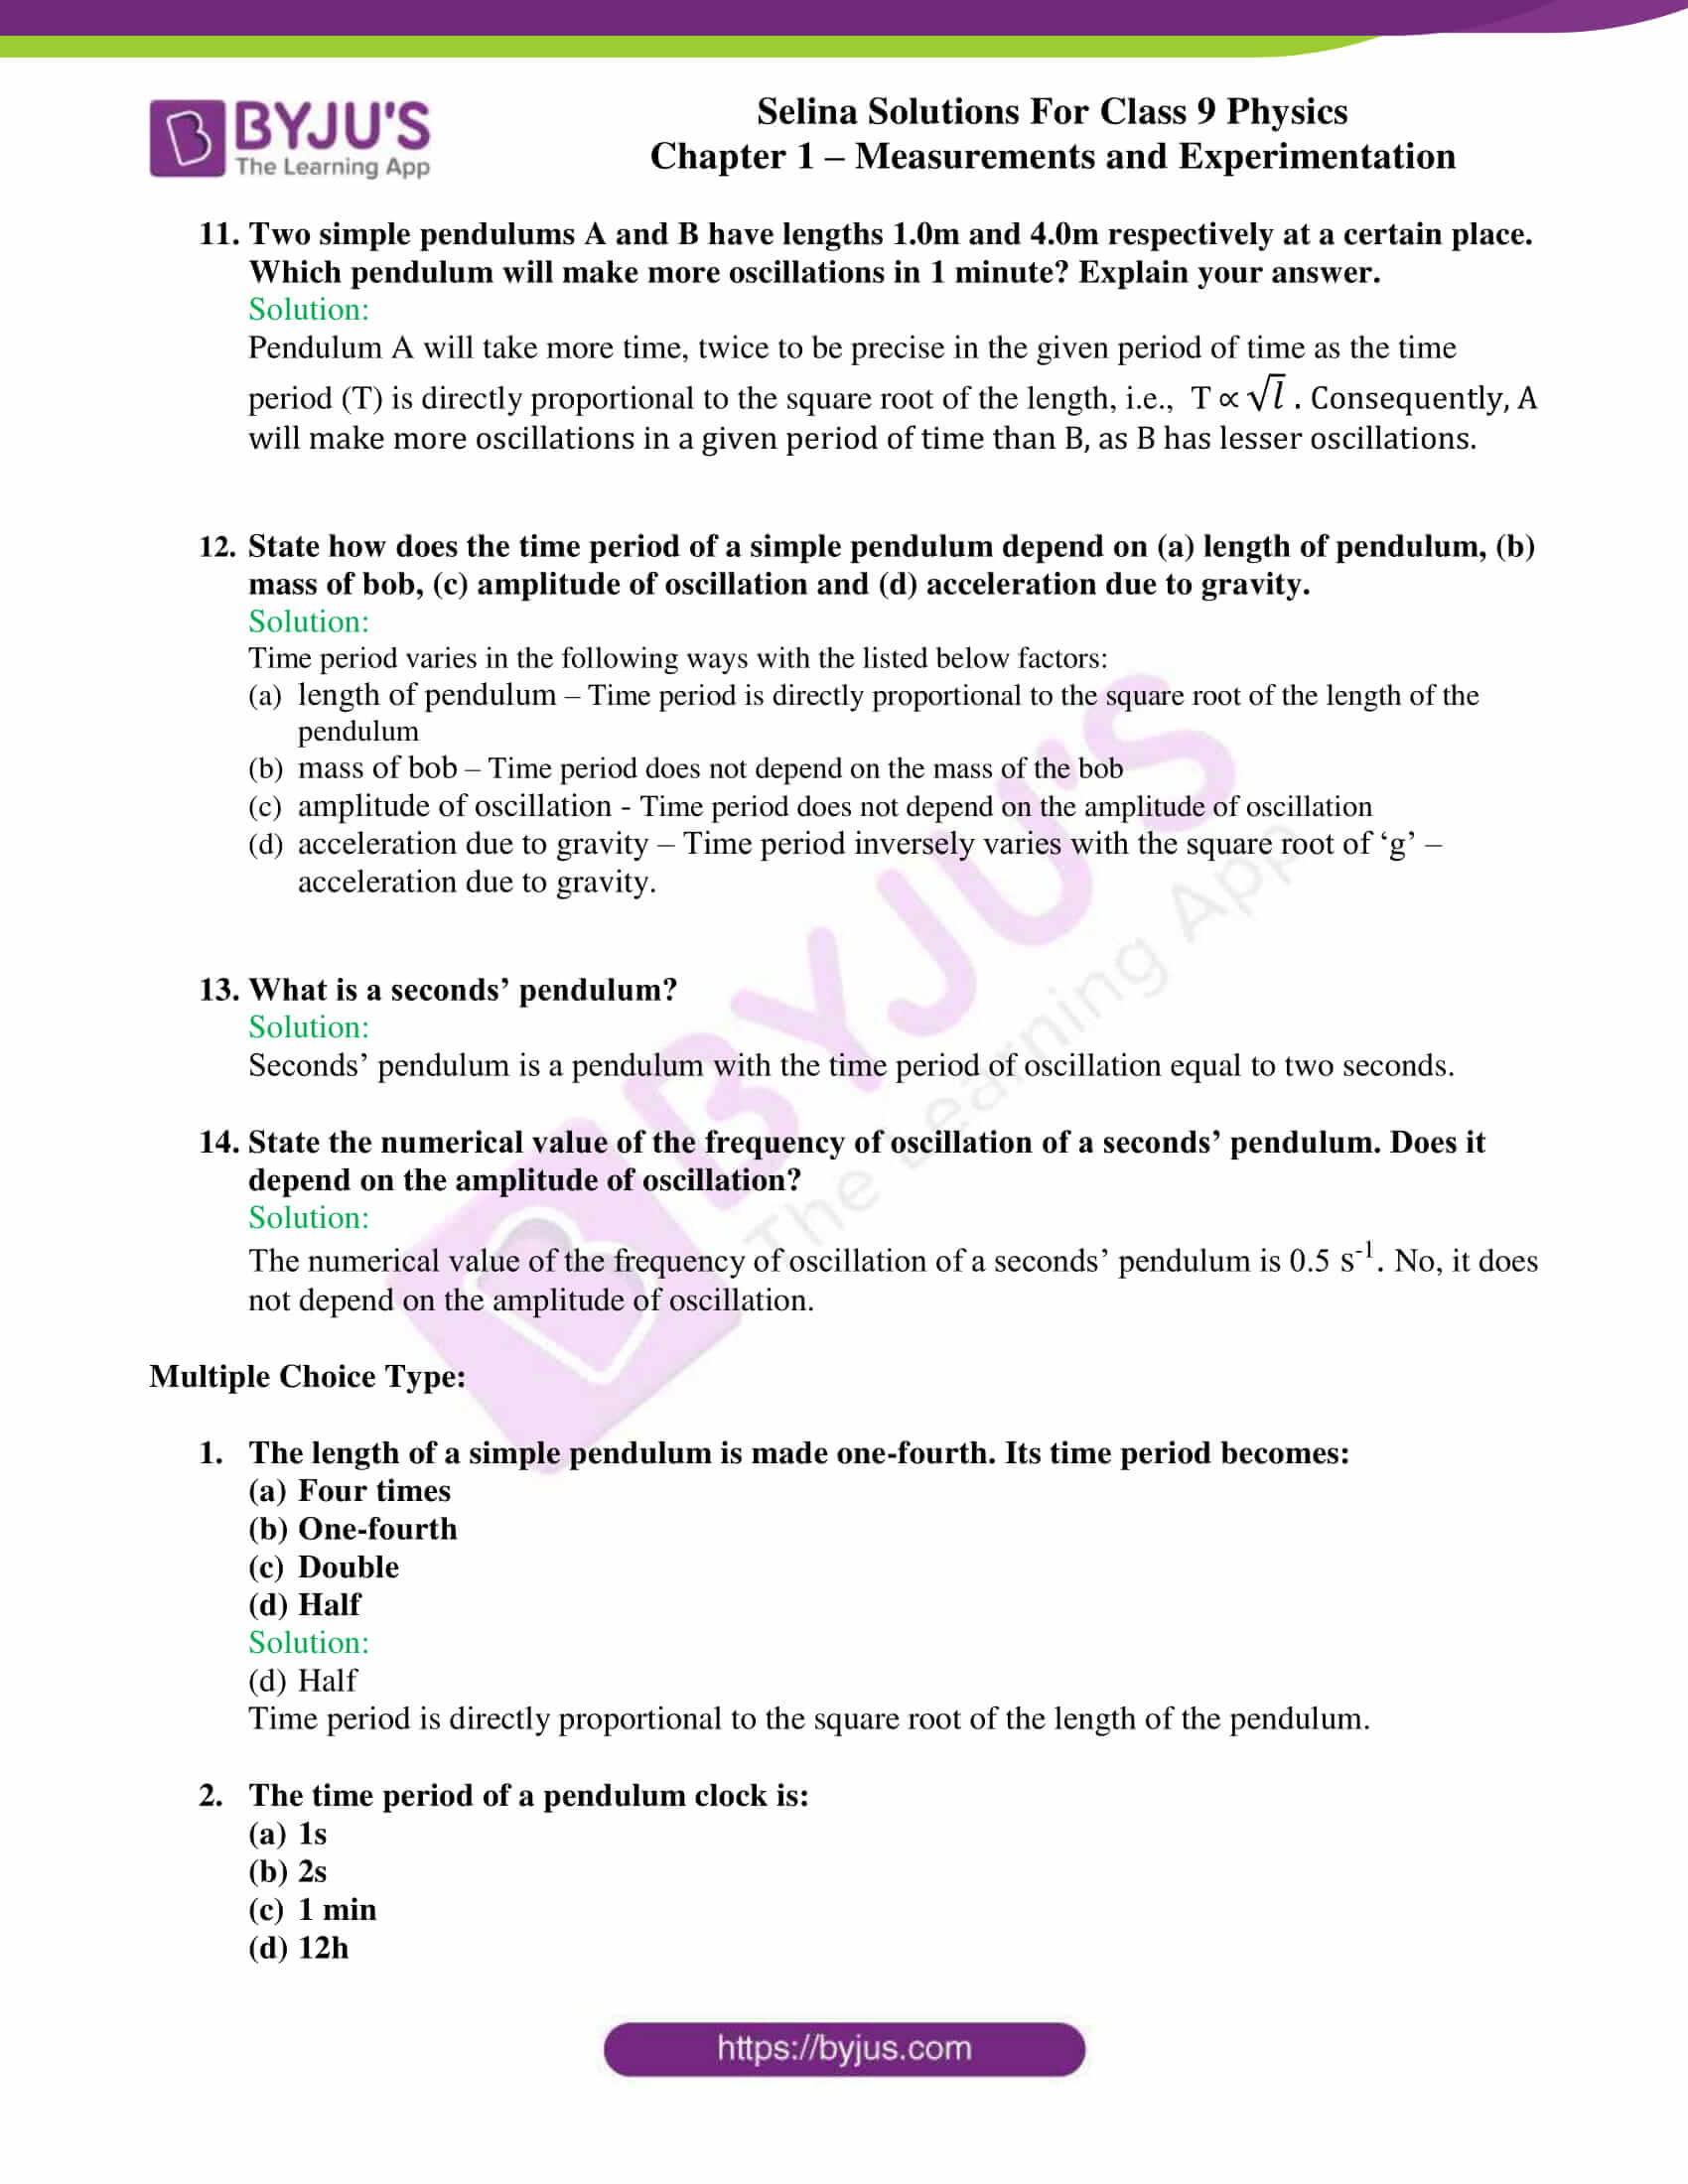 selina solutions class 9 physics chapter 1 Measurements and Experimentation part 28